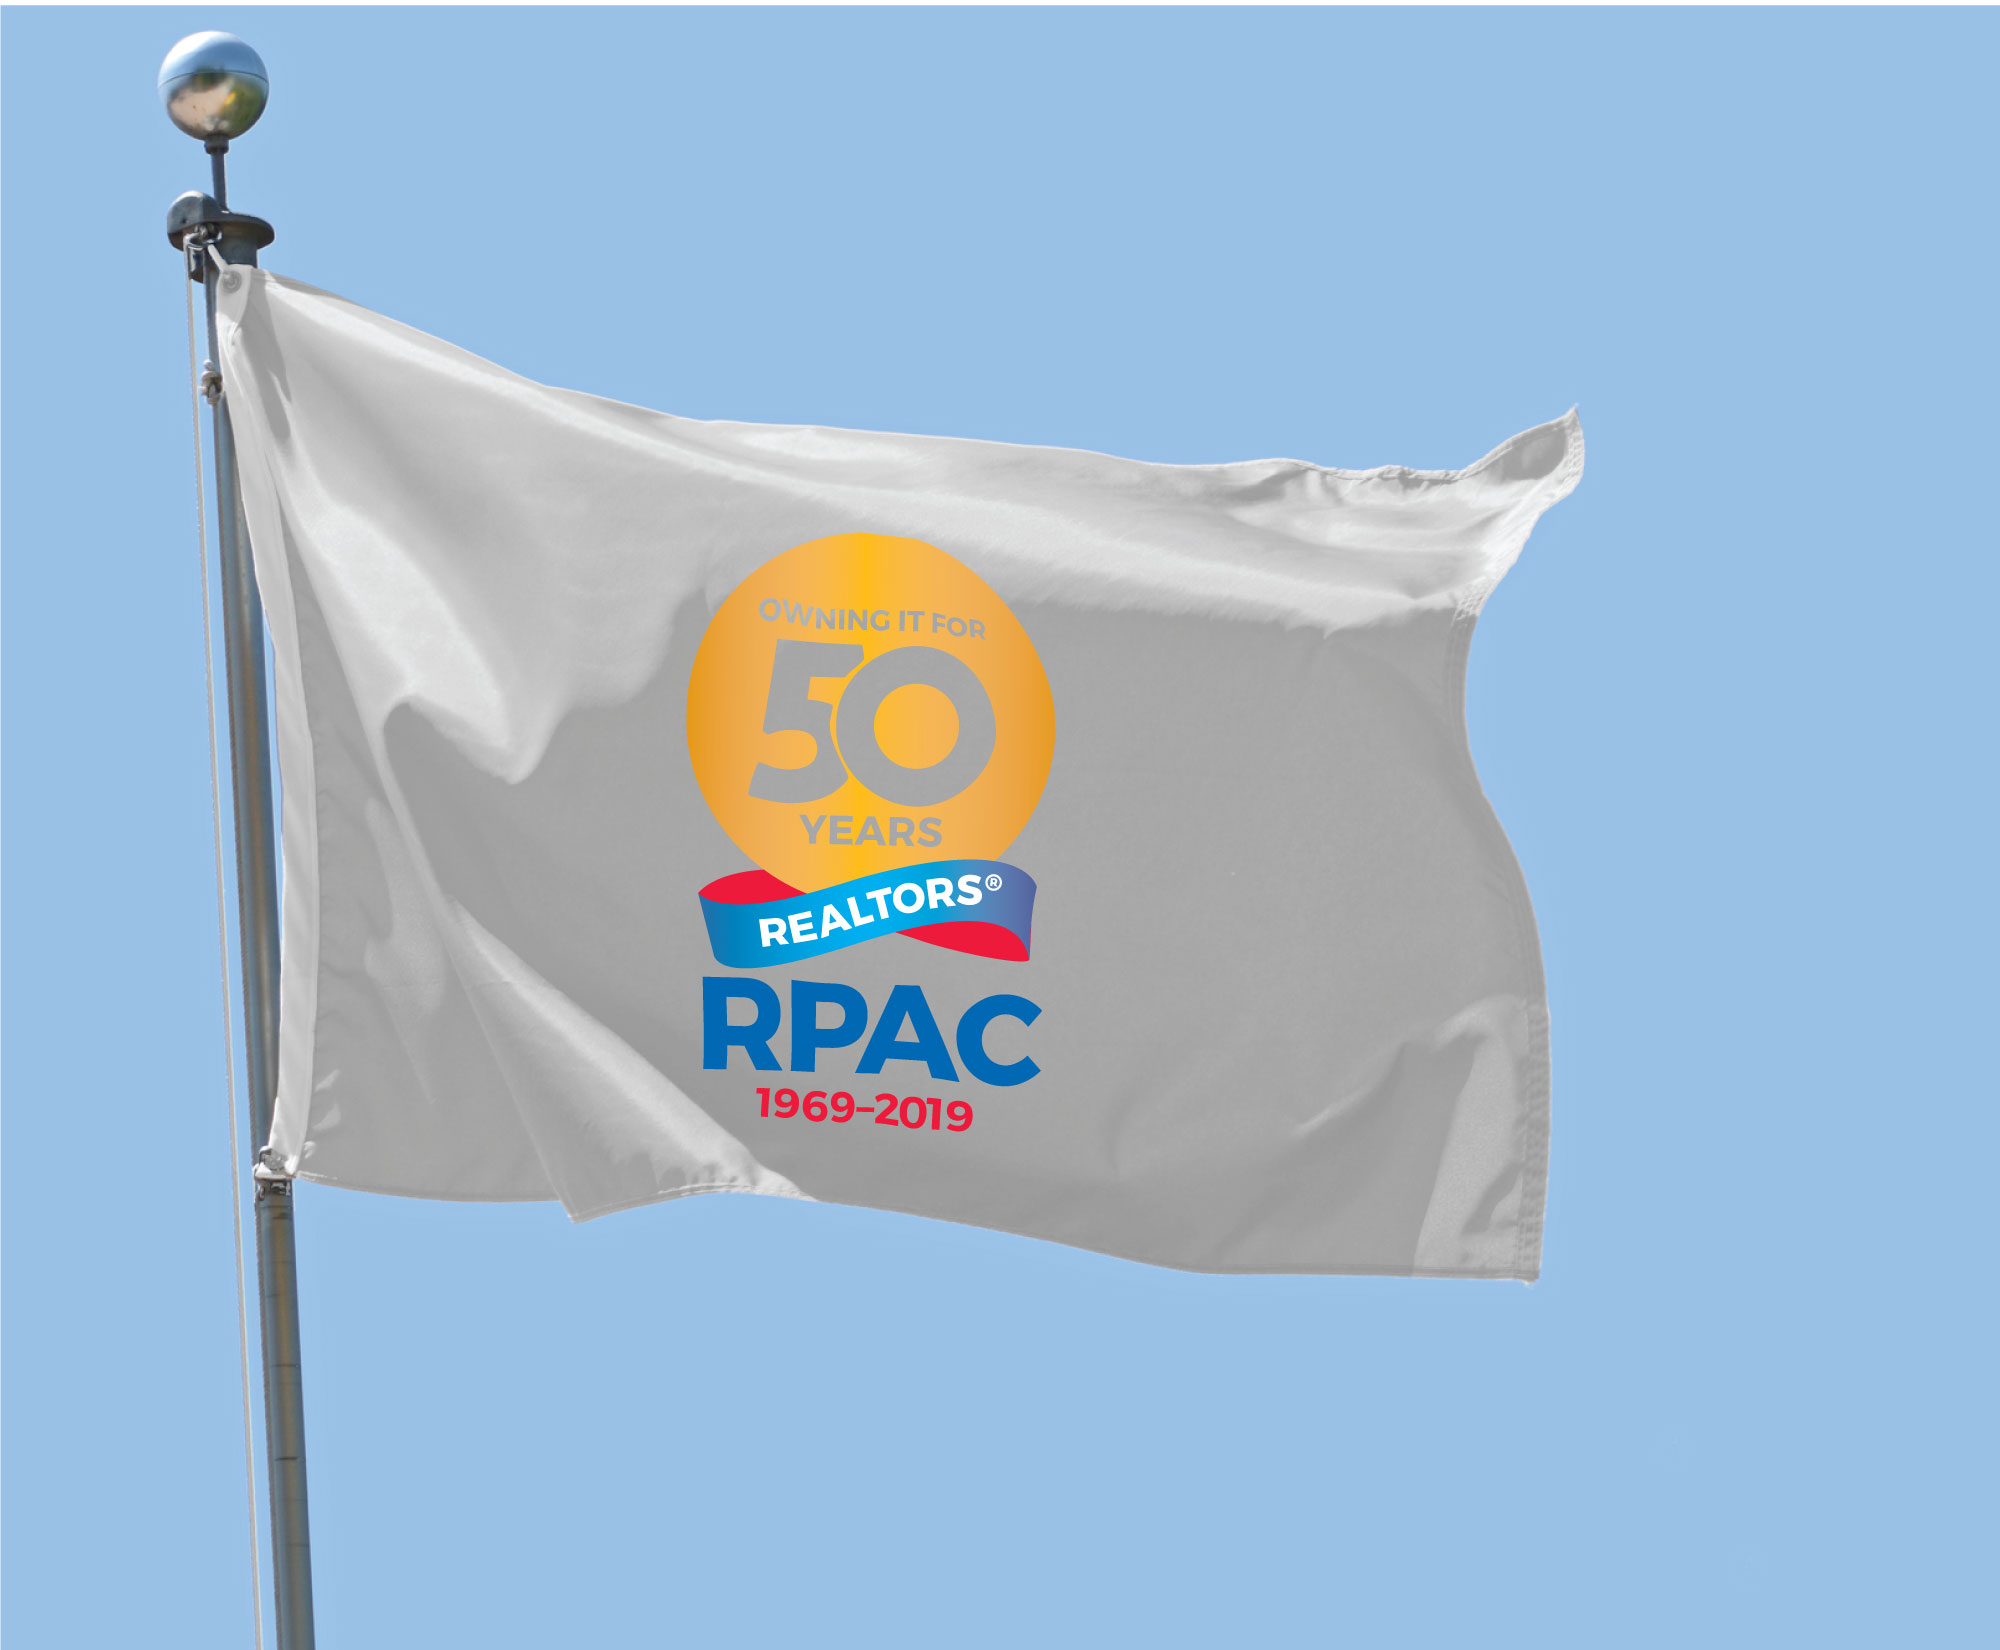 RPAC 50th Anniversary Nylon Flag Flags,RPACS,Realtors, Partys, banners